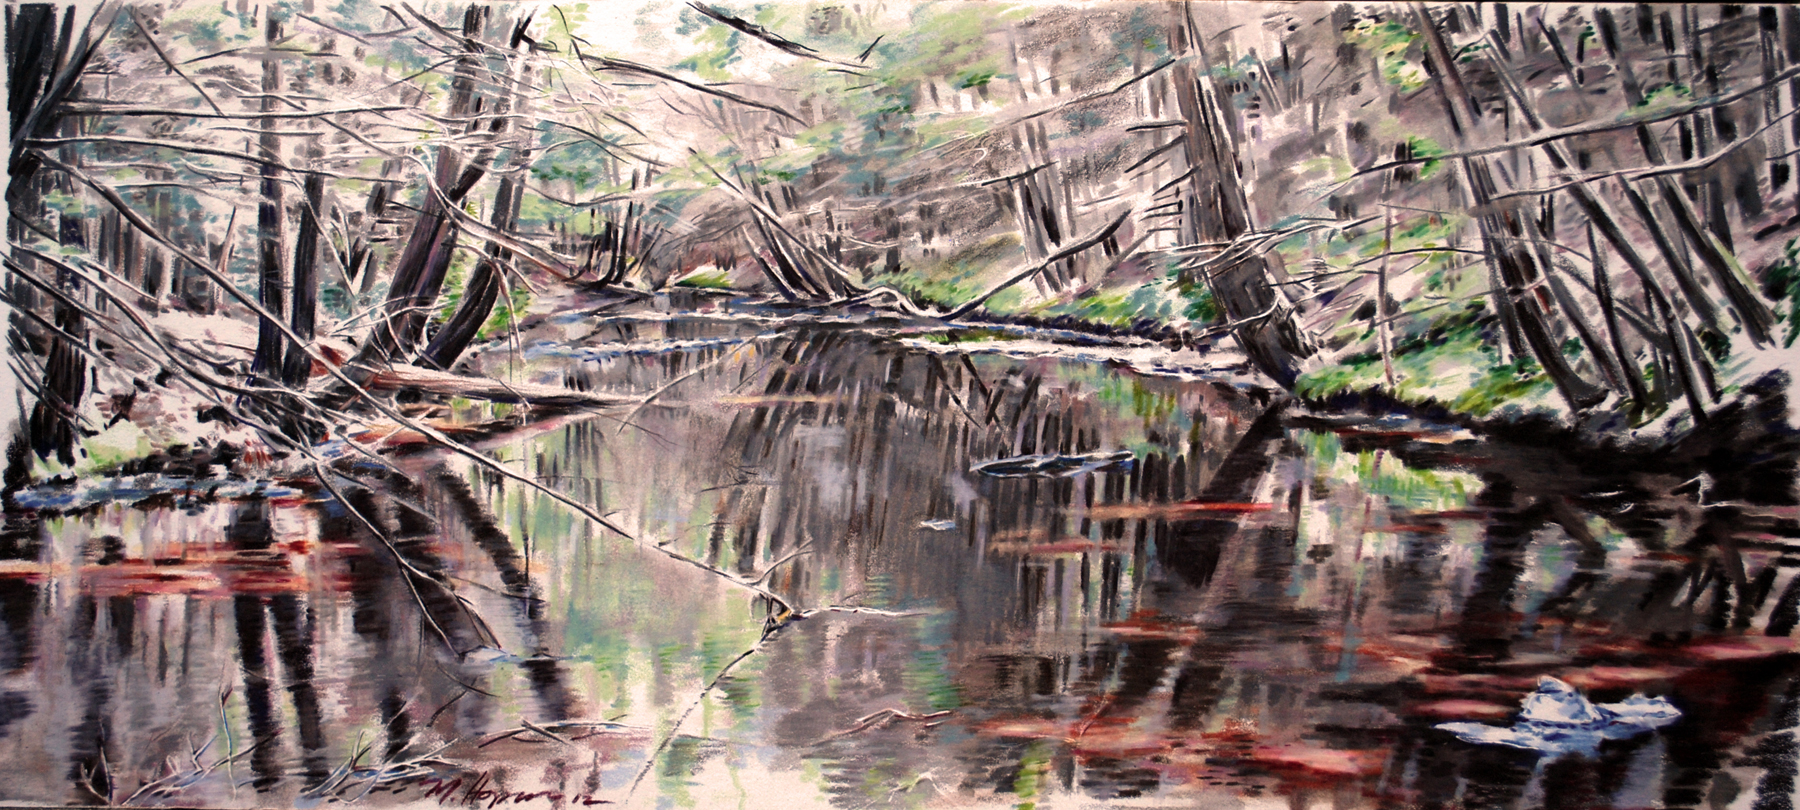 Creekscape in colored pencil